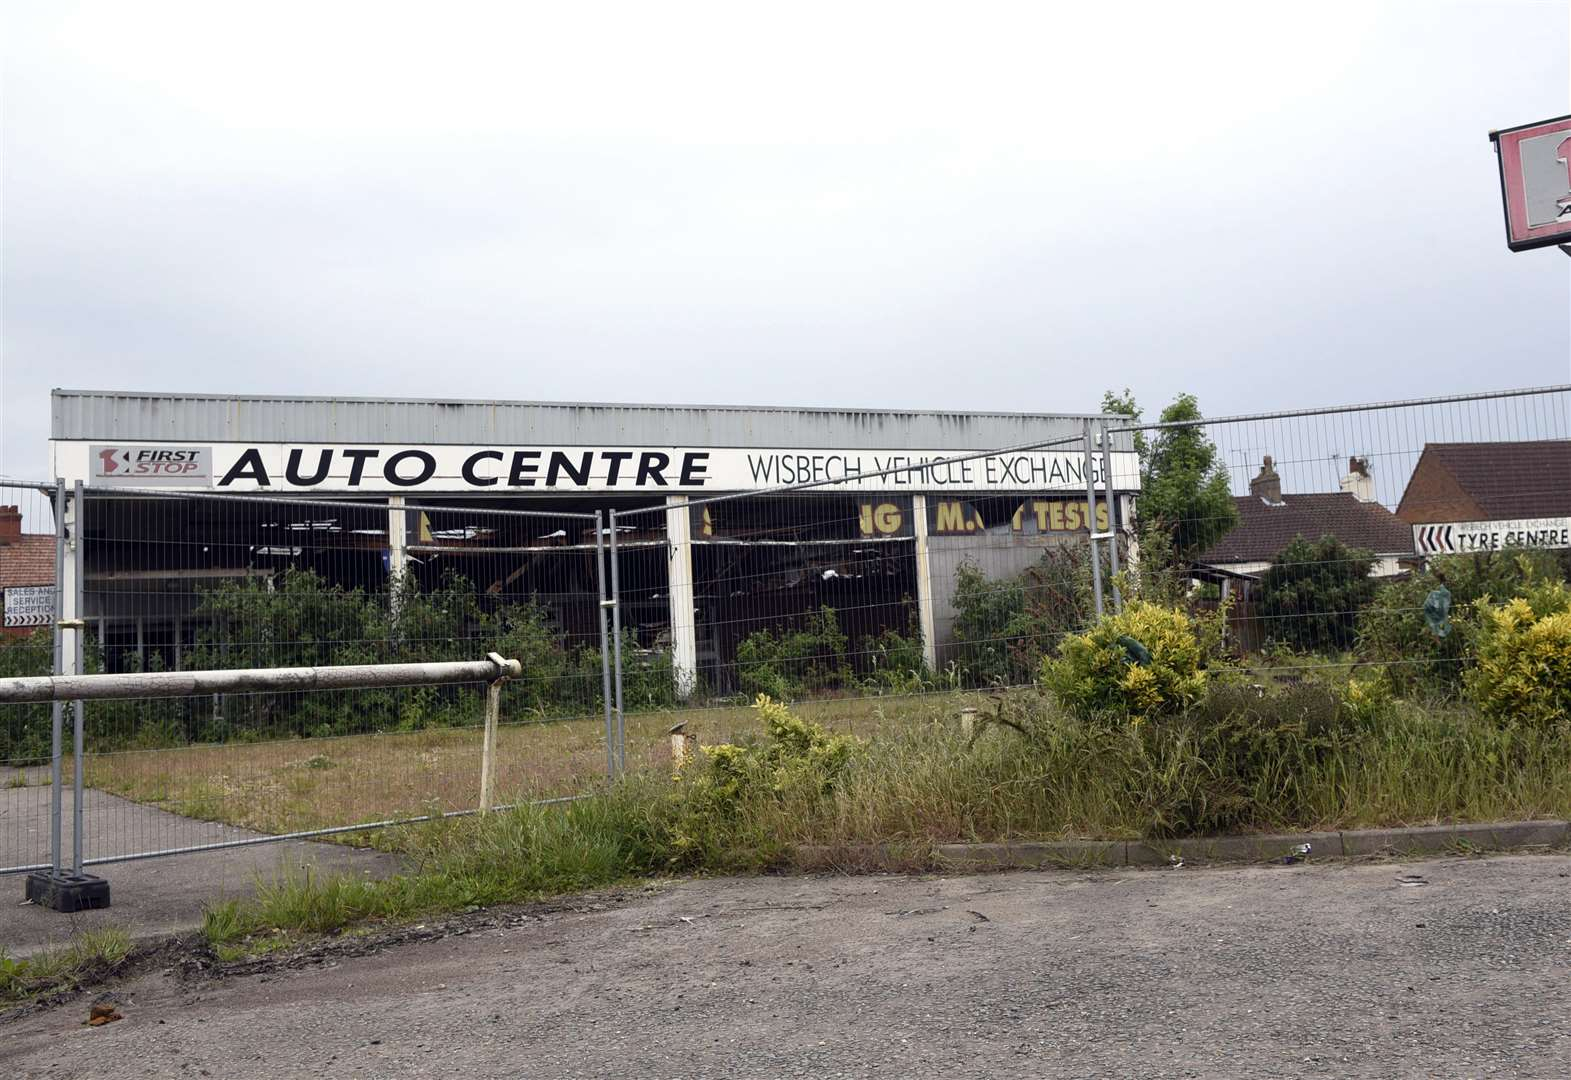 Call for action on 'eyesore' car site in Wisbech